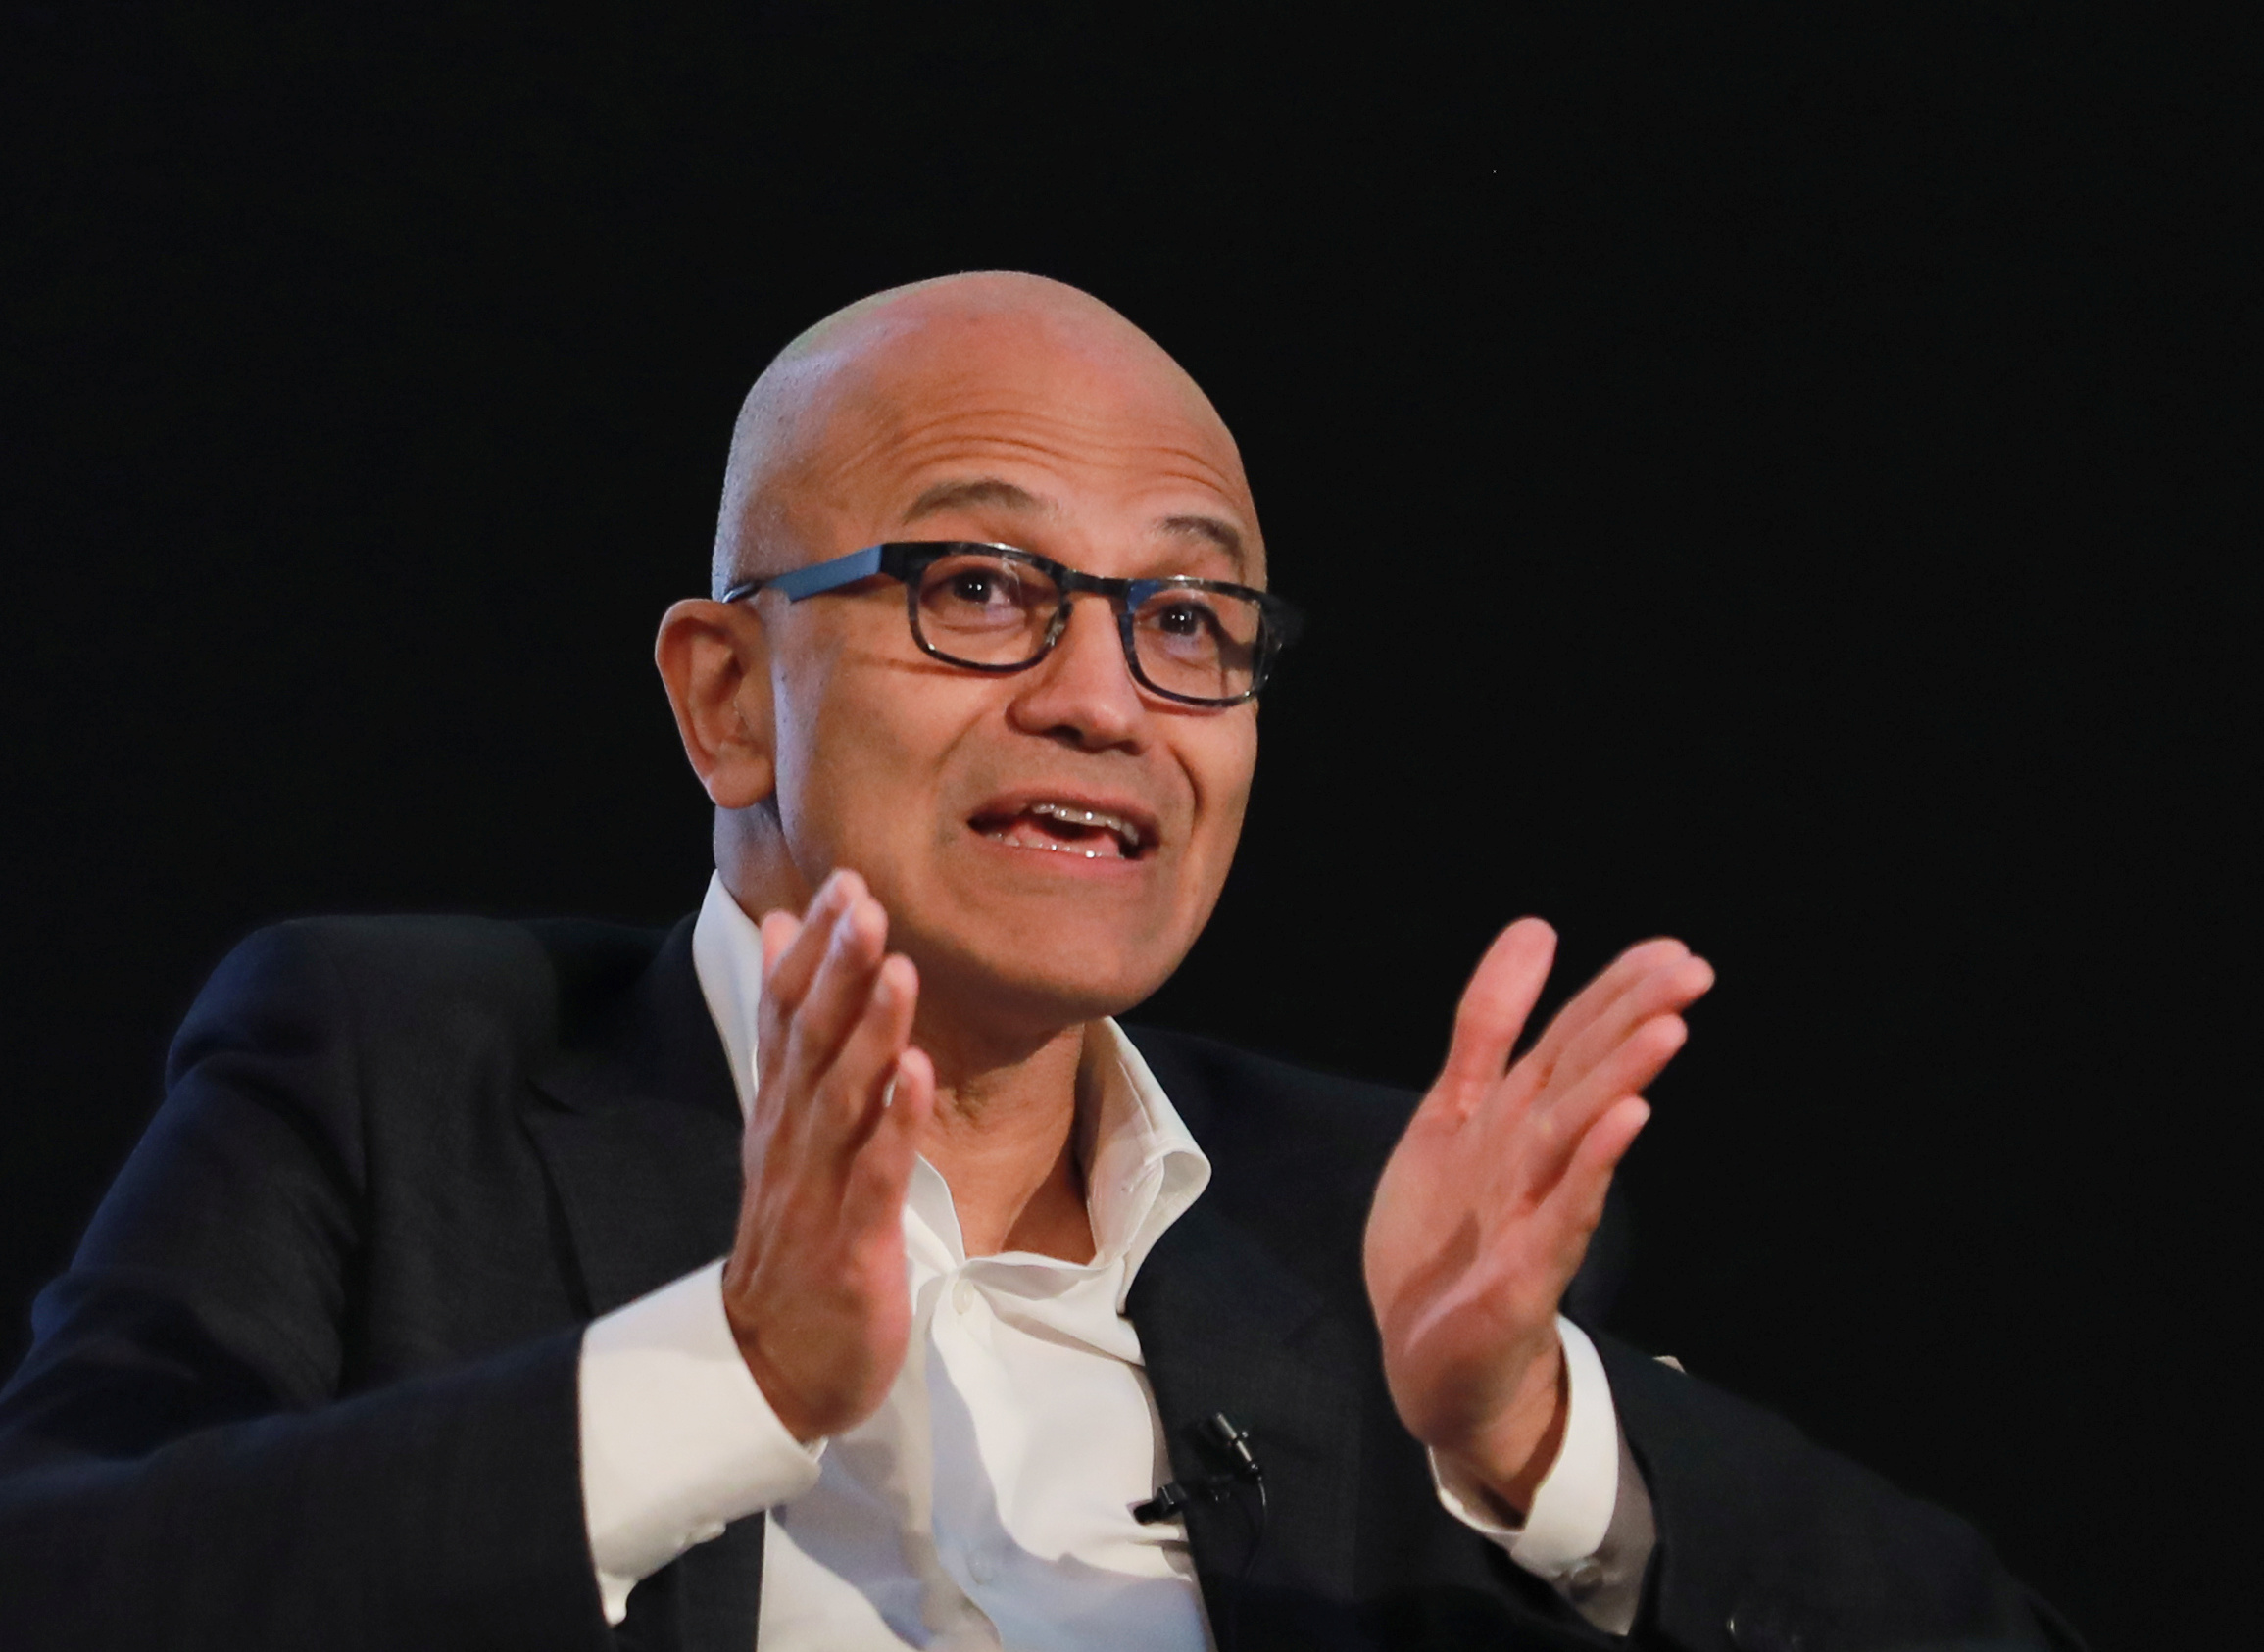 Satya Nadella, Chief Executive Officer of Microsoft, gestures as he attends Microsoft's 'Young Innovators' Summit' in New Delhi, India February 26, 2020. REUTERS/Anushree Fadnavis - RC288F9X0CWQ